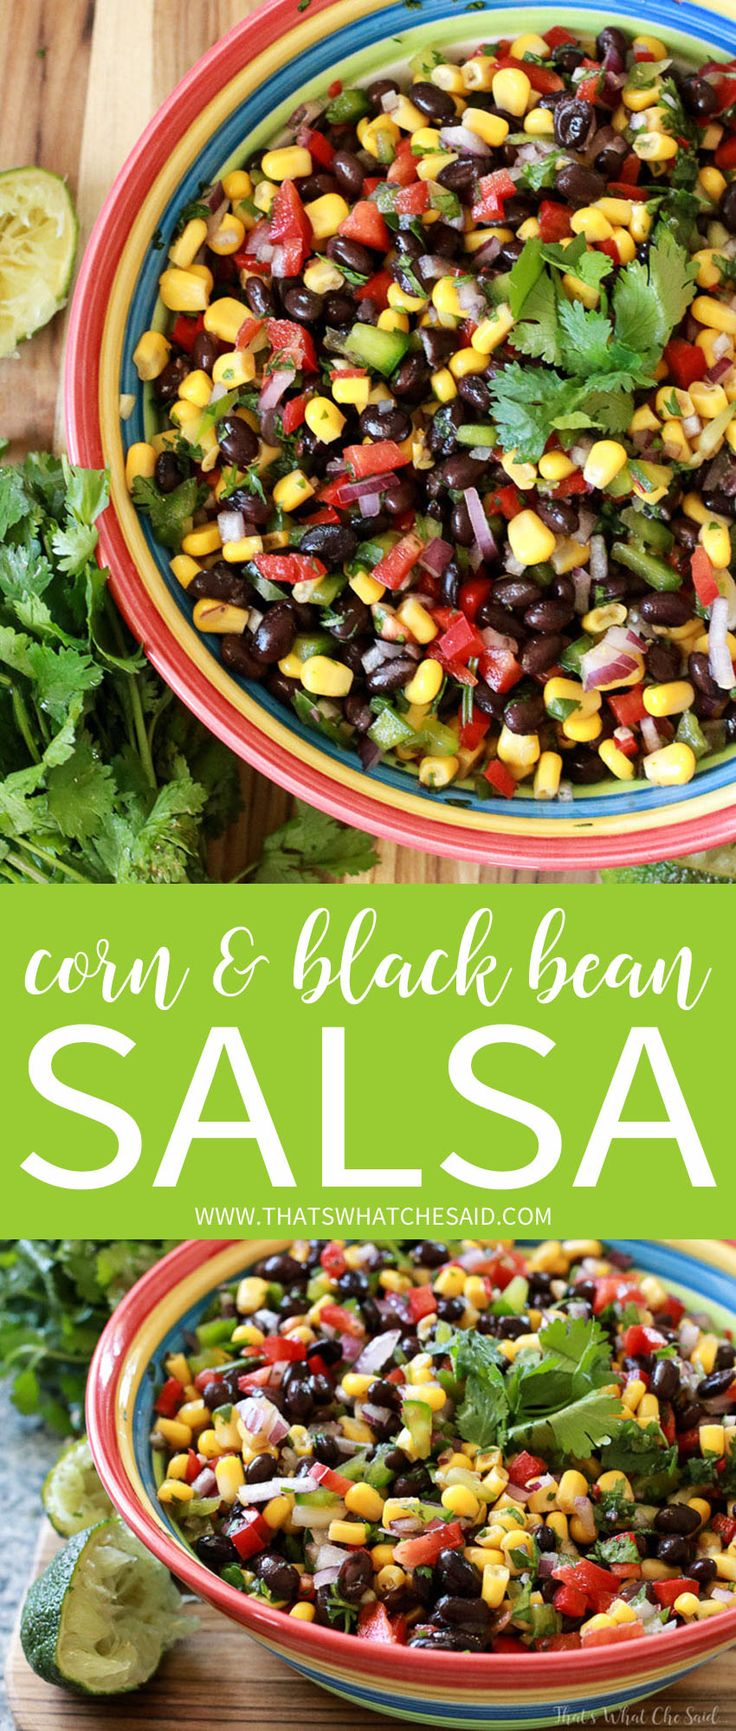 Easy Corn & Black Bean Salsa Recipe. Perfect for Picnics and Summer fun because it can sit out with no worries!